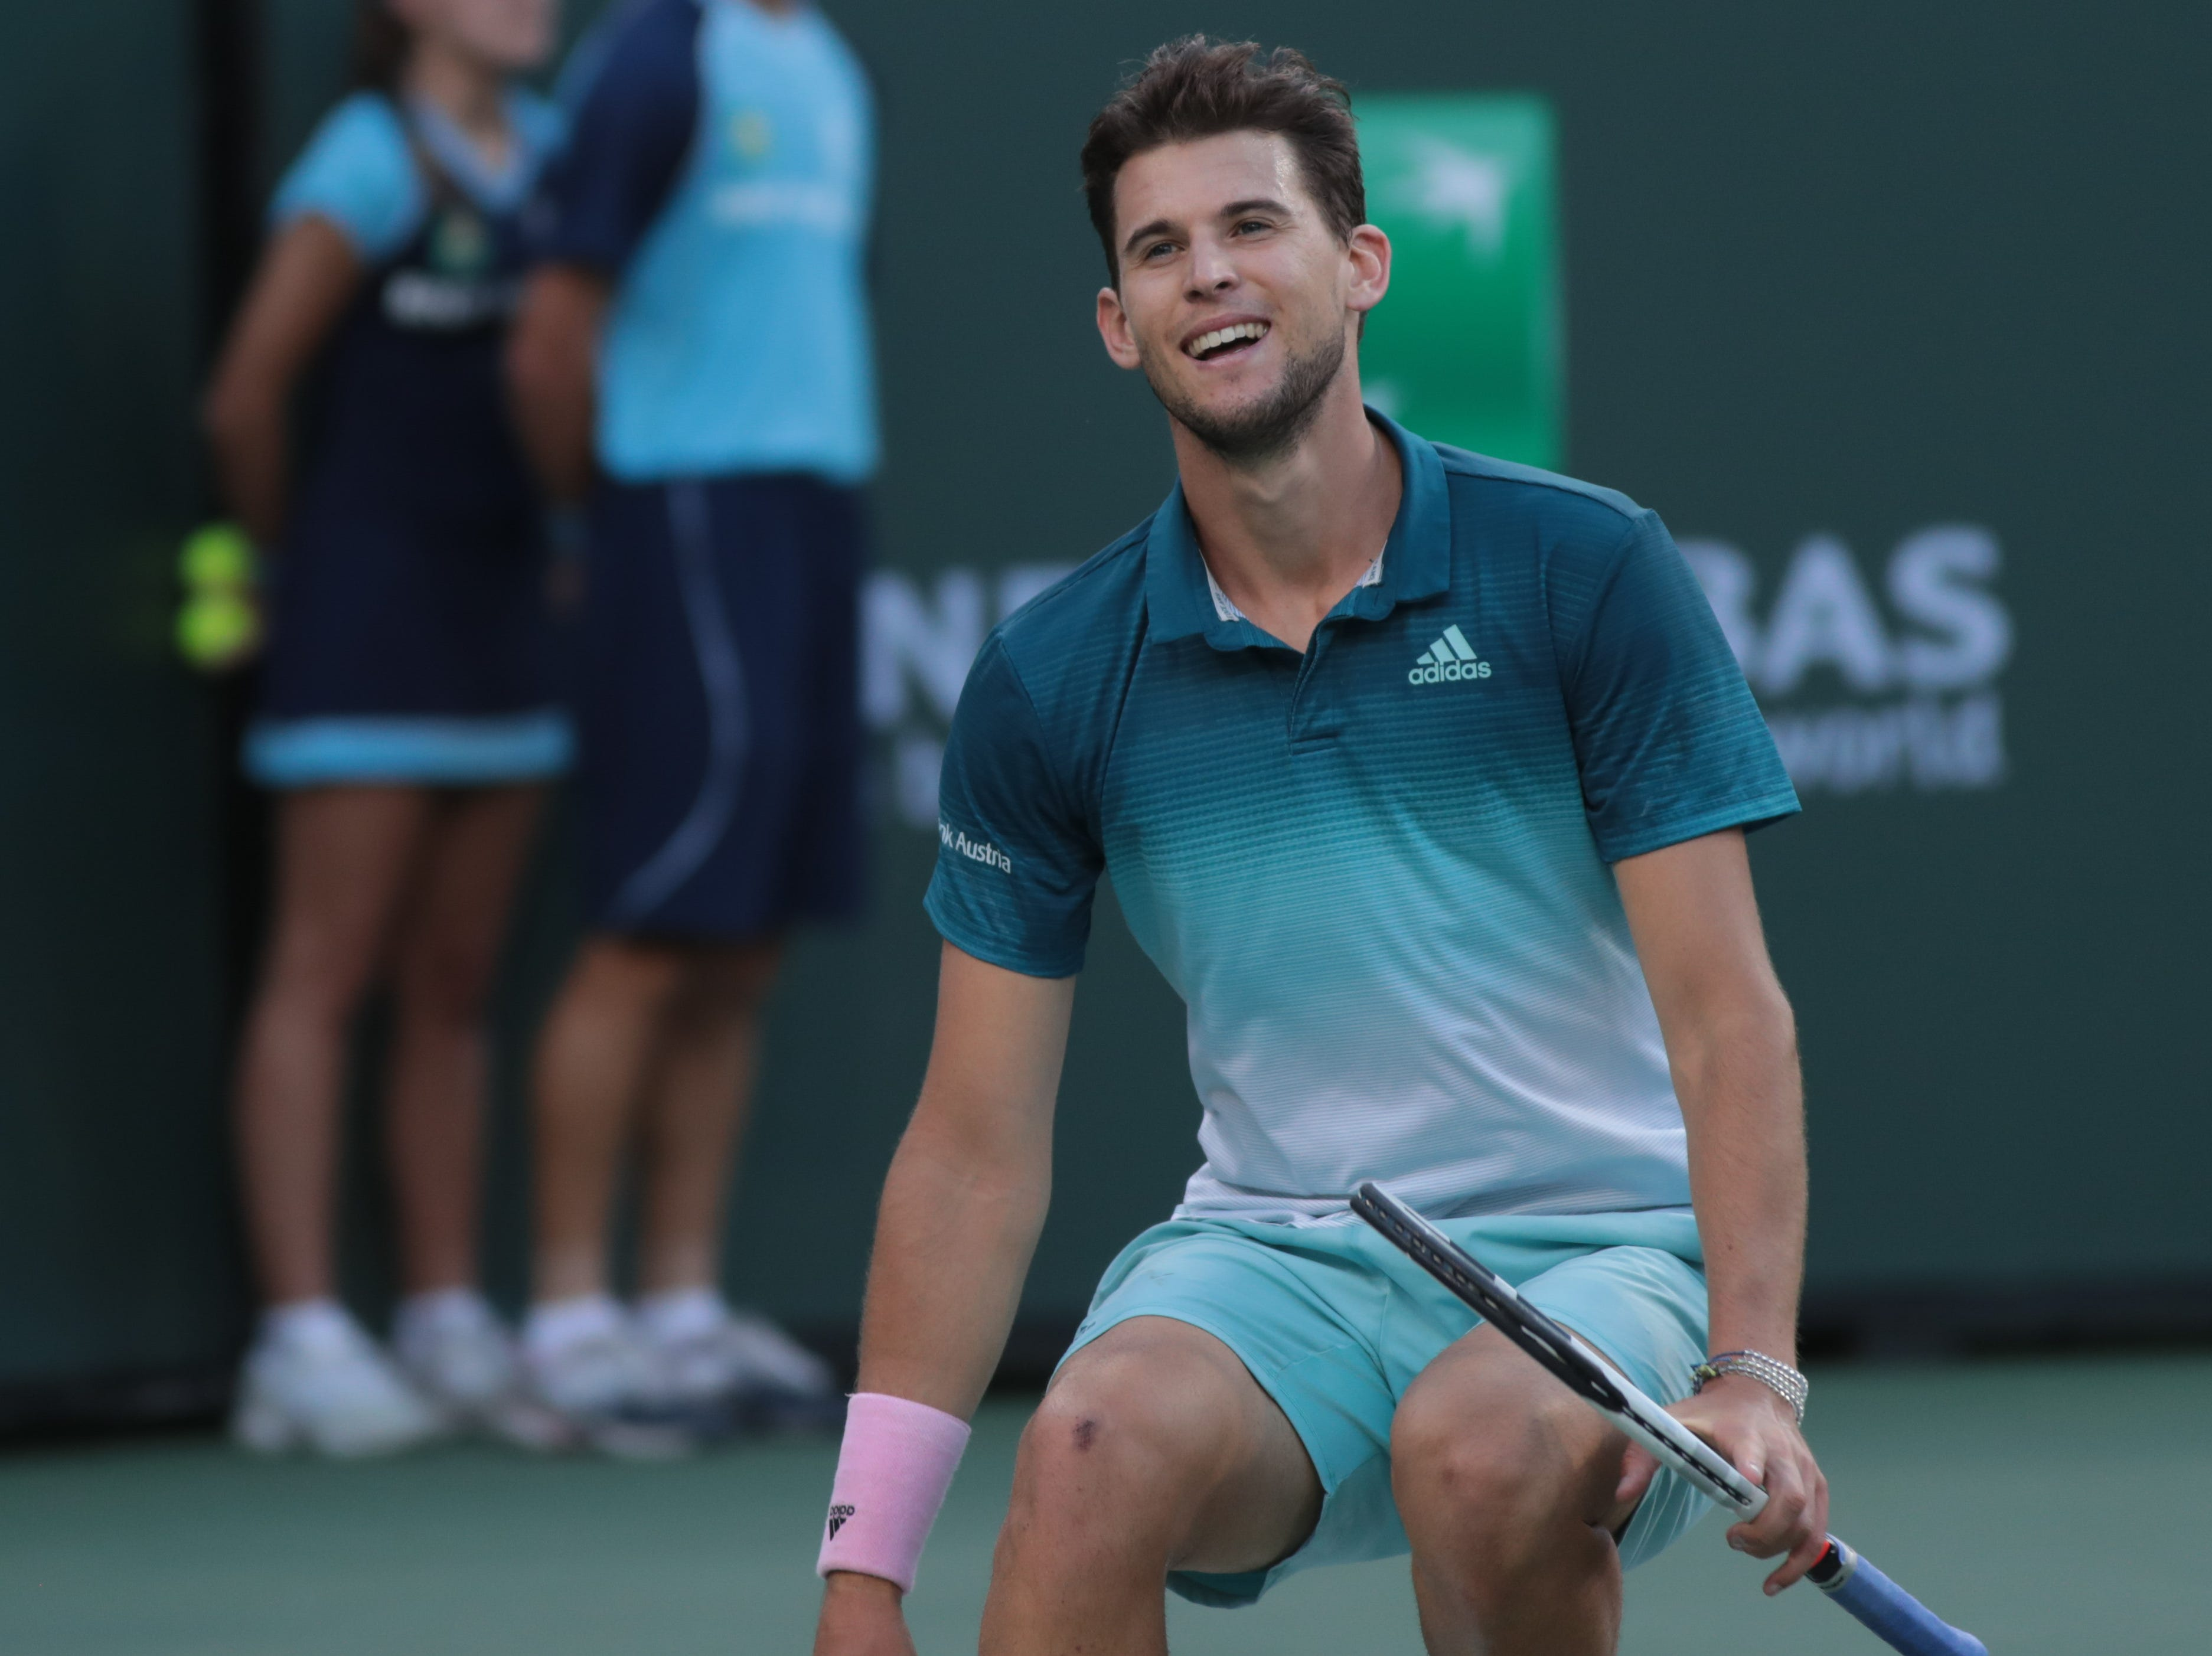 Dominic Thiem reacts after defeating Roger Federer in the finals of the BNP Paribas Open in Indian Wells, Calif., March 17, 2019.